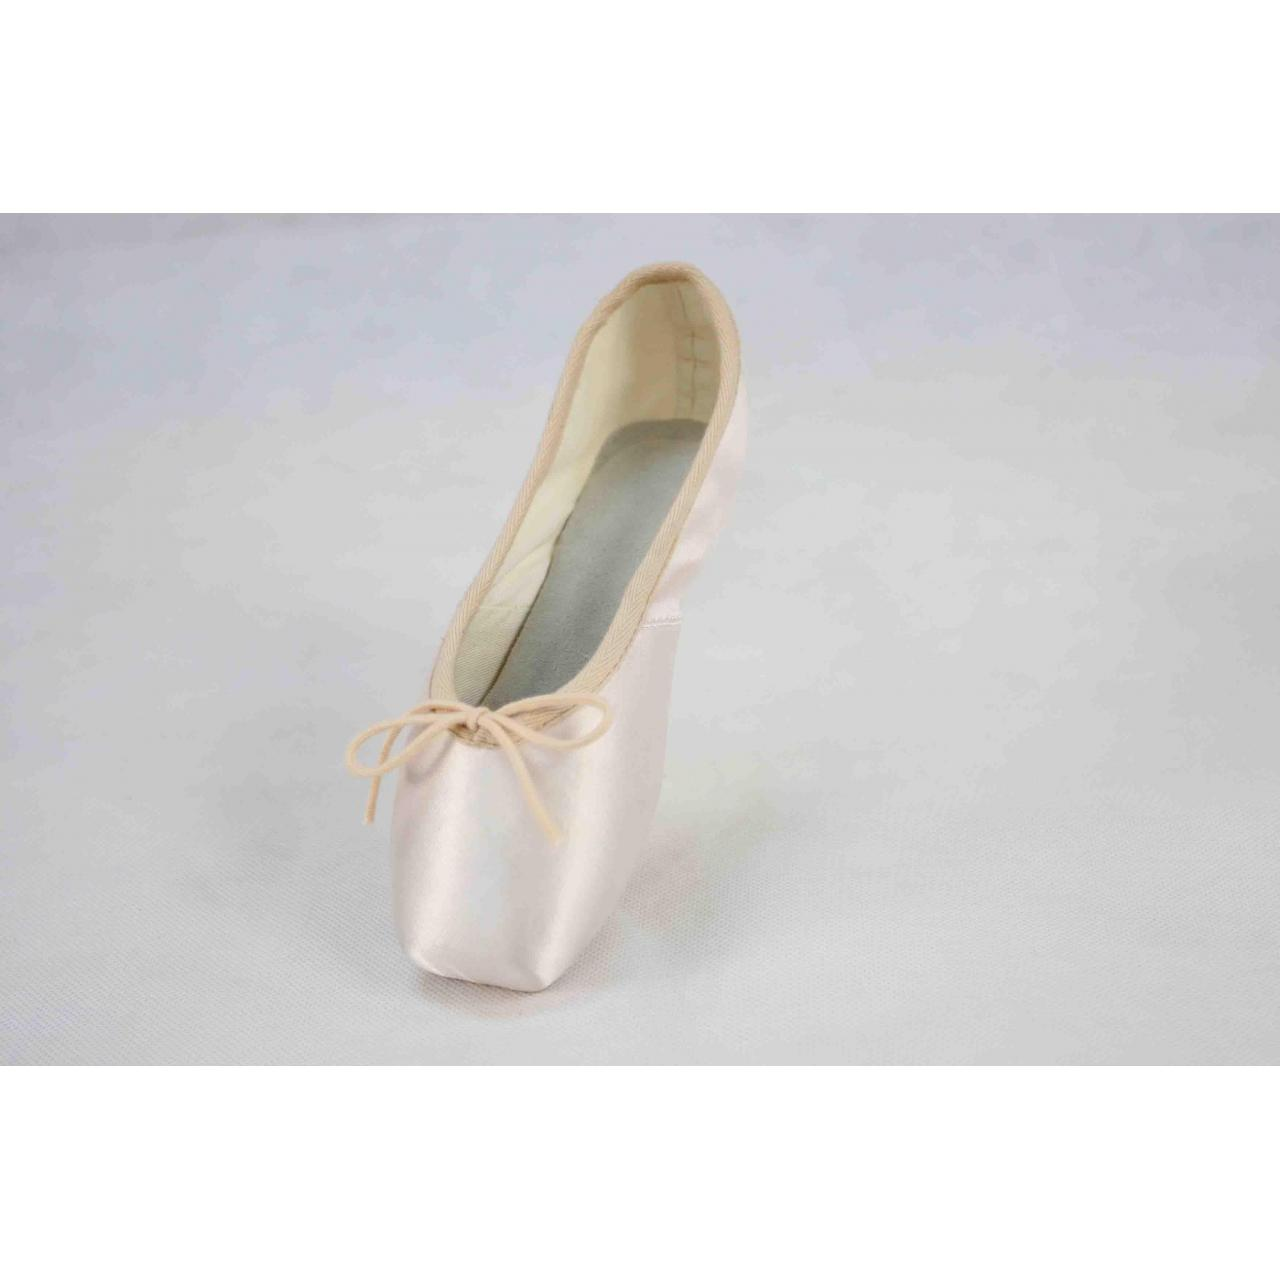 Wholesale Light Industrial Products pointeballetshoe 2231524216 from china suppliers